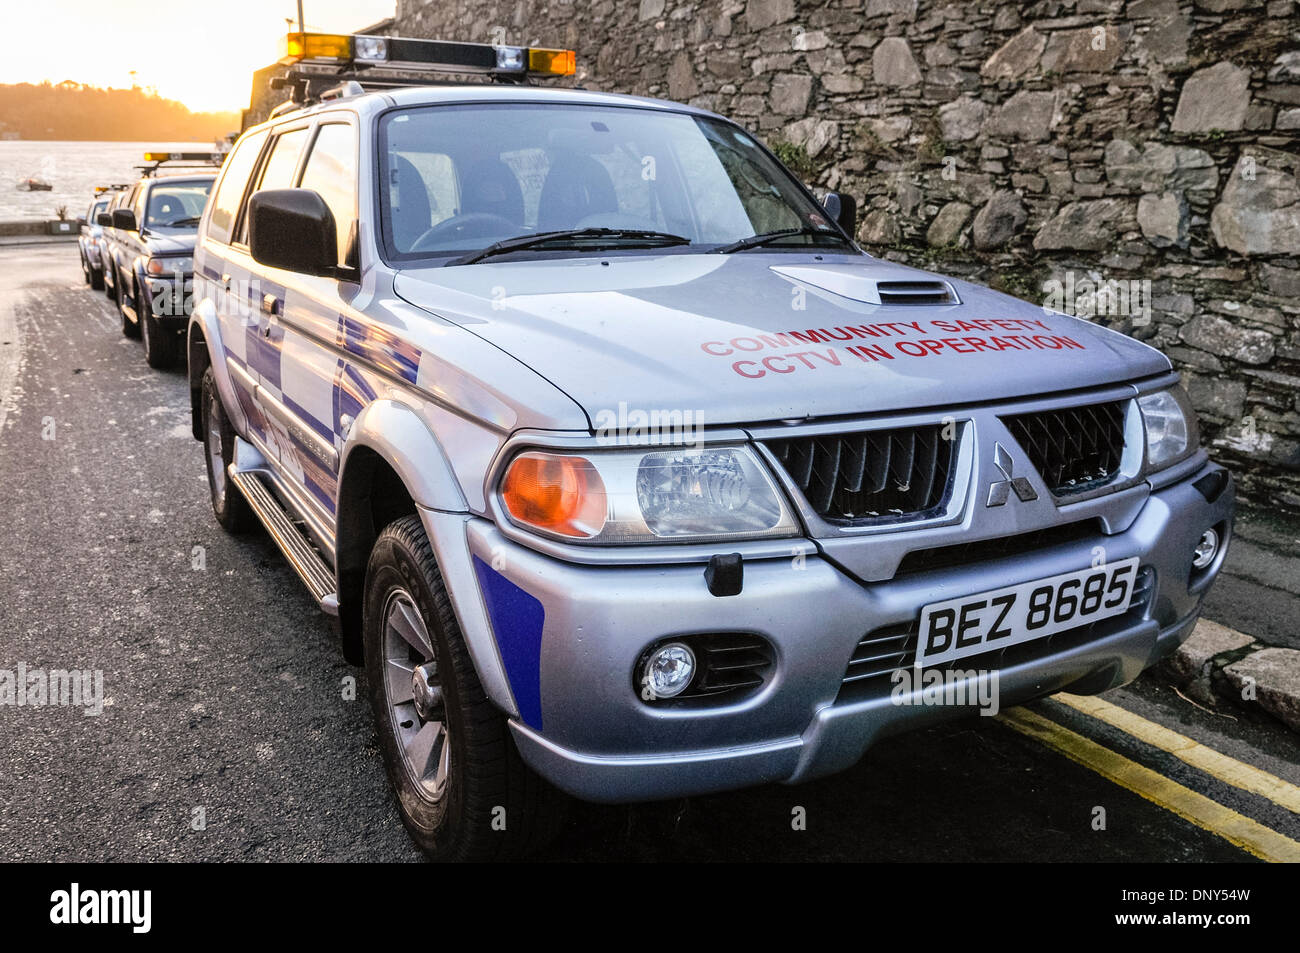 Portaferry, Northern Ireland. 6 Jan 2014 - Community Safety vehicles parked in readiness to help potential victims Stock Photo